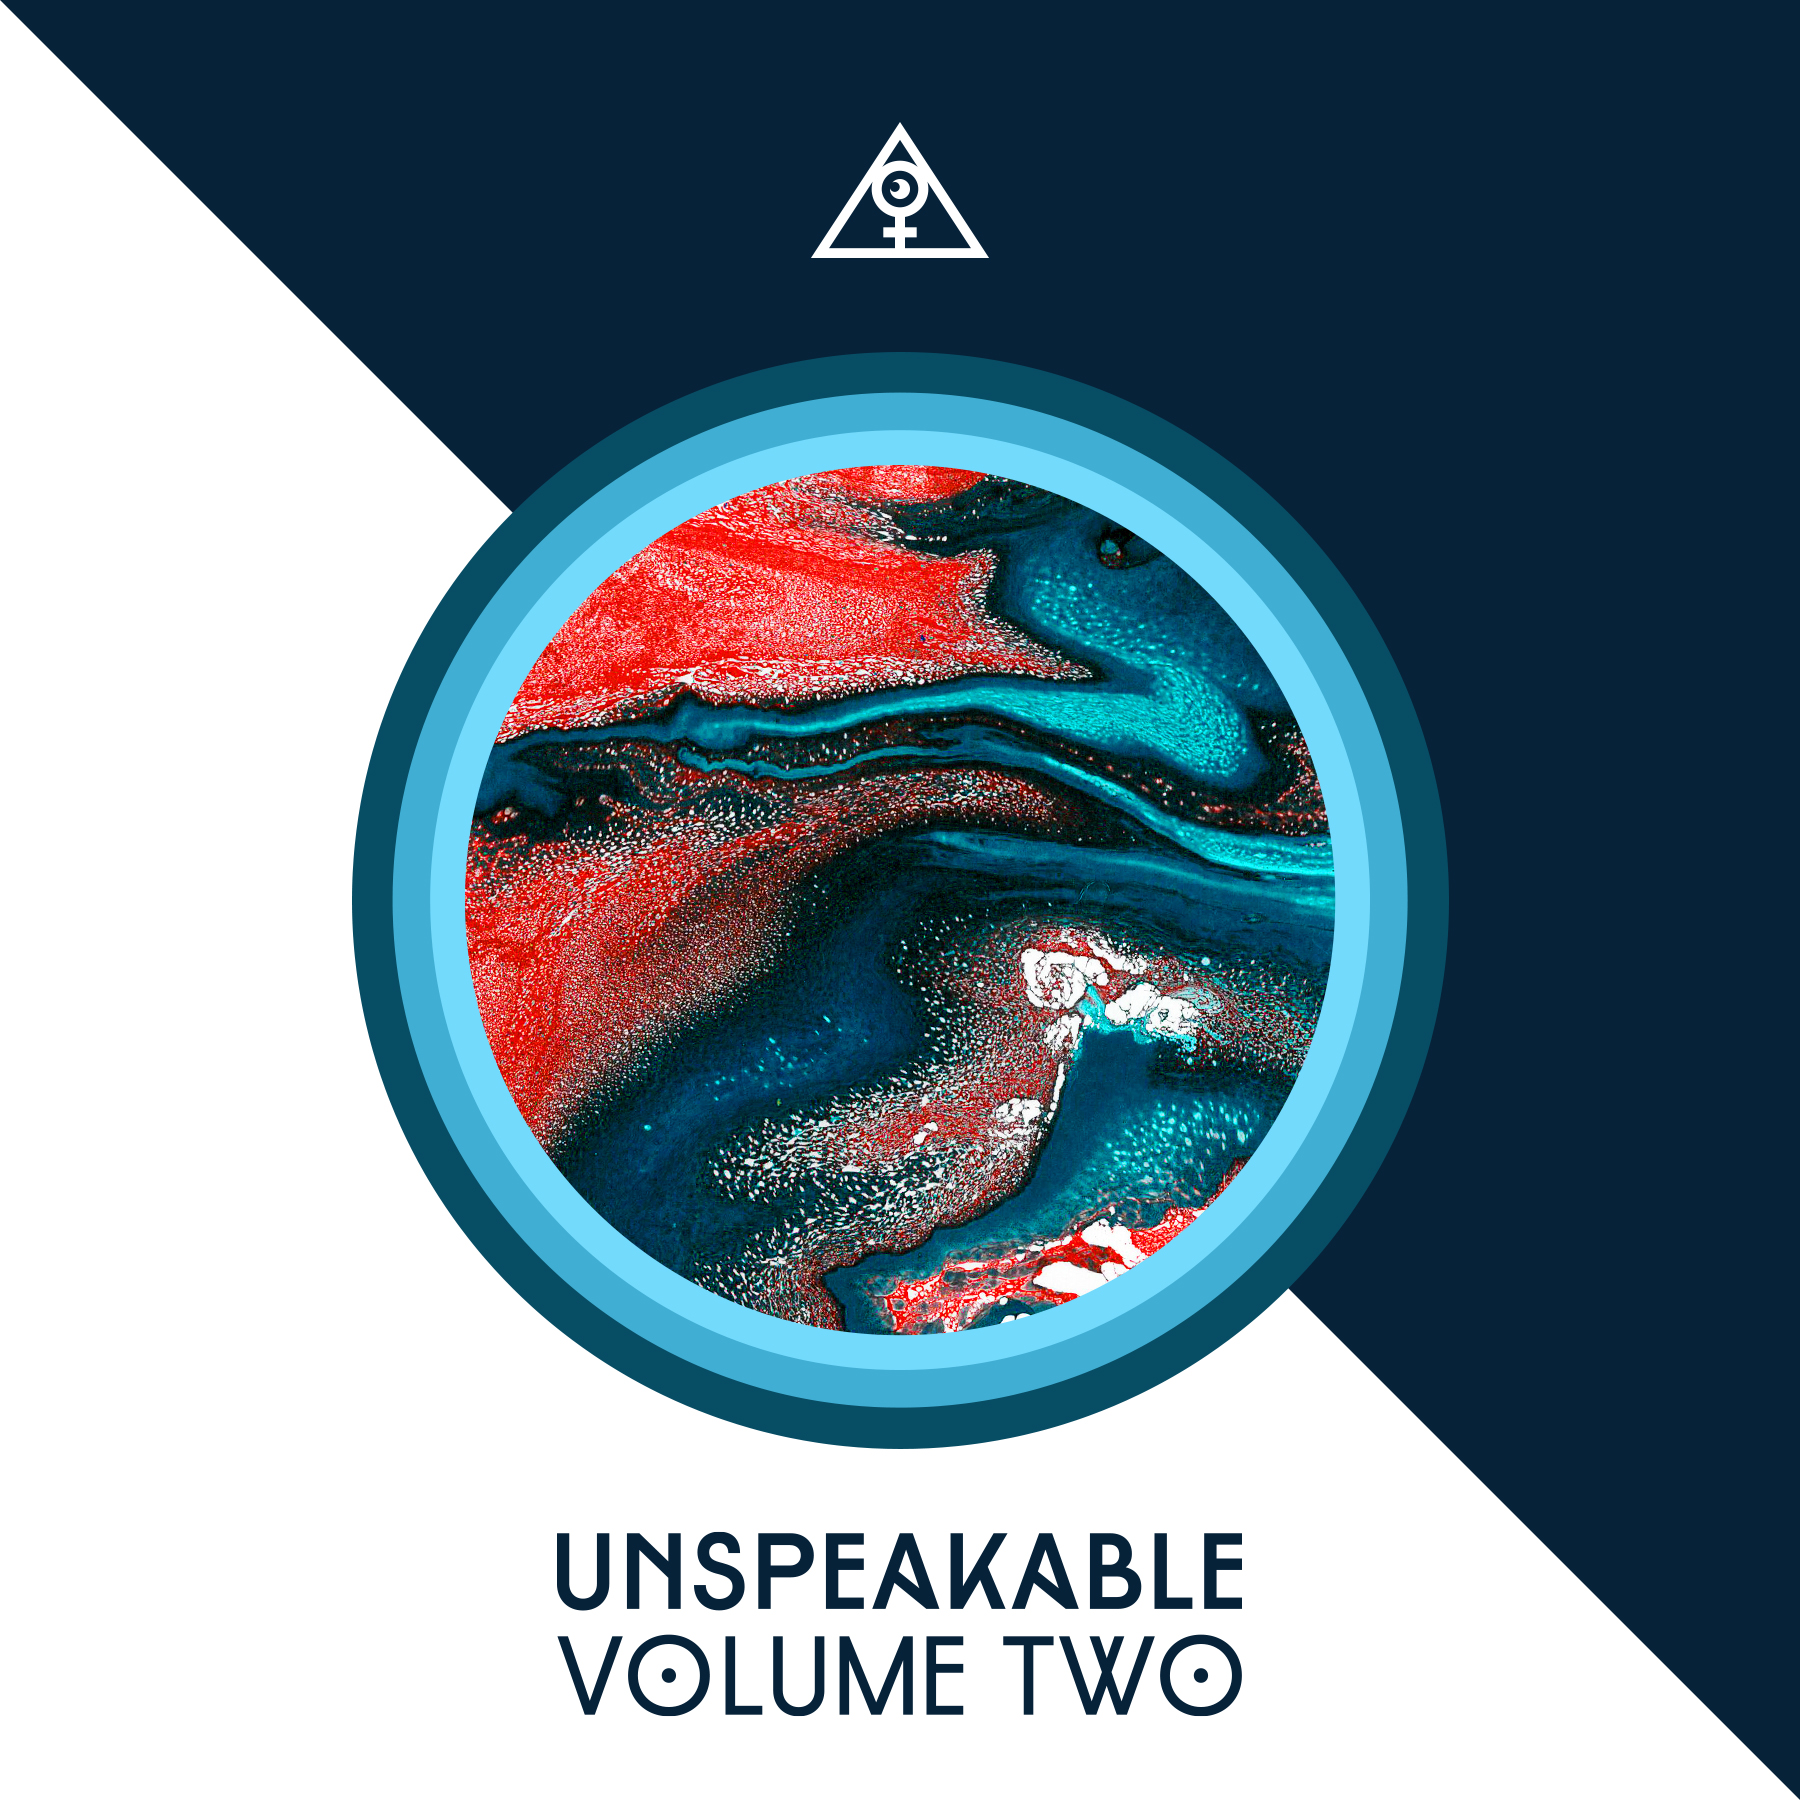 Unspeakable Volume Two